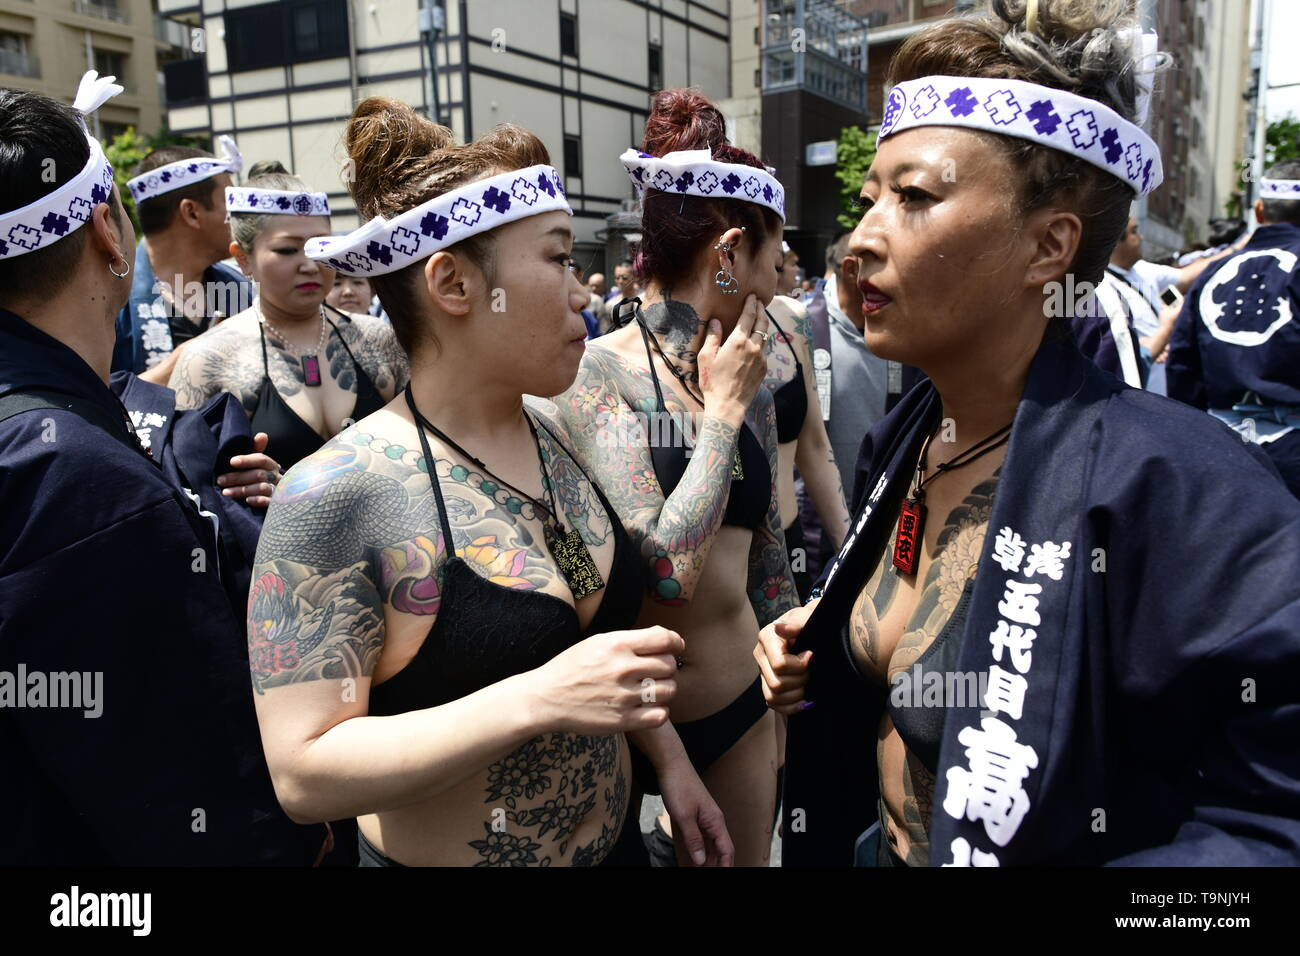 """TOKYO, JAPAN - MAY 18: Heavily tattooed Japanese women walk in the street of Asakusa during """"Sanja Matsuri"""" on May 18, 2019 in Tokyo, Japan. A boisterous traditional mikoshi (portable shrine) is carried in the streets of Asakusa to bring goodluck, blessings and prosperity to the area and its inhabitants. (Photo: Richard Atrero de Guzman/ AFLO) Stock Photo"""